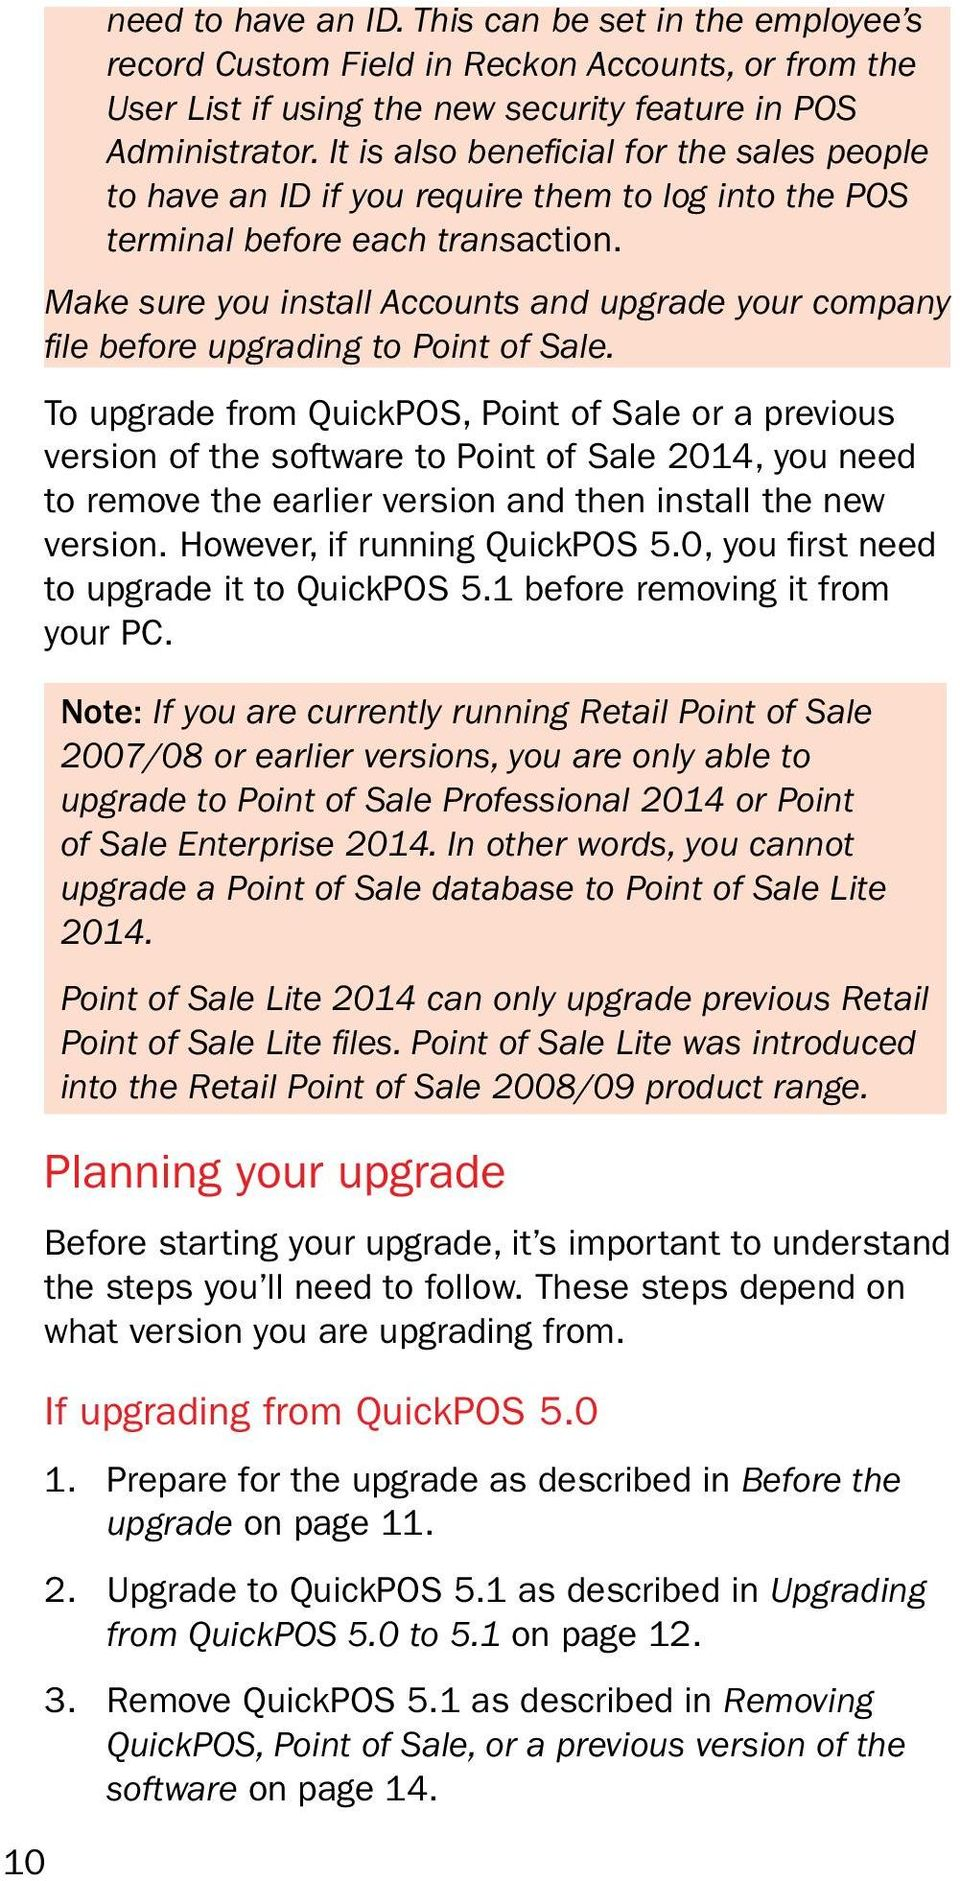 Make sure you install Accounts and upgrade your company file before upgrading to Point of Sale.